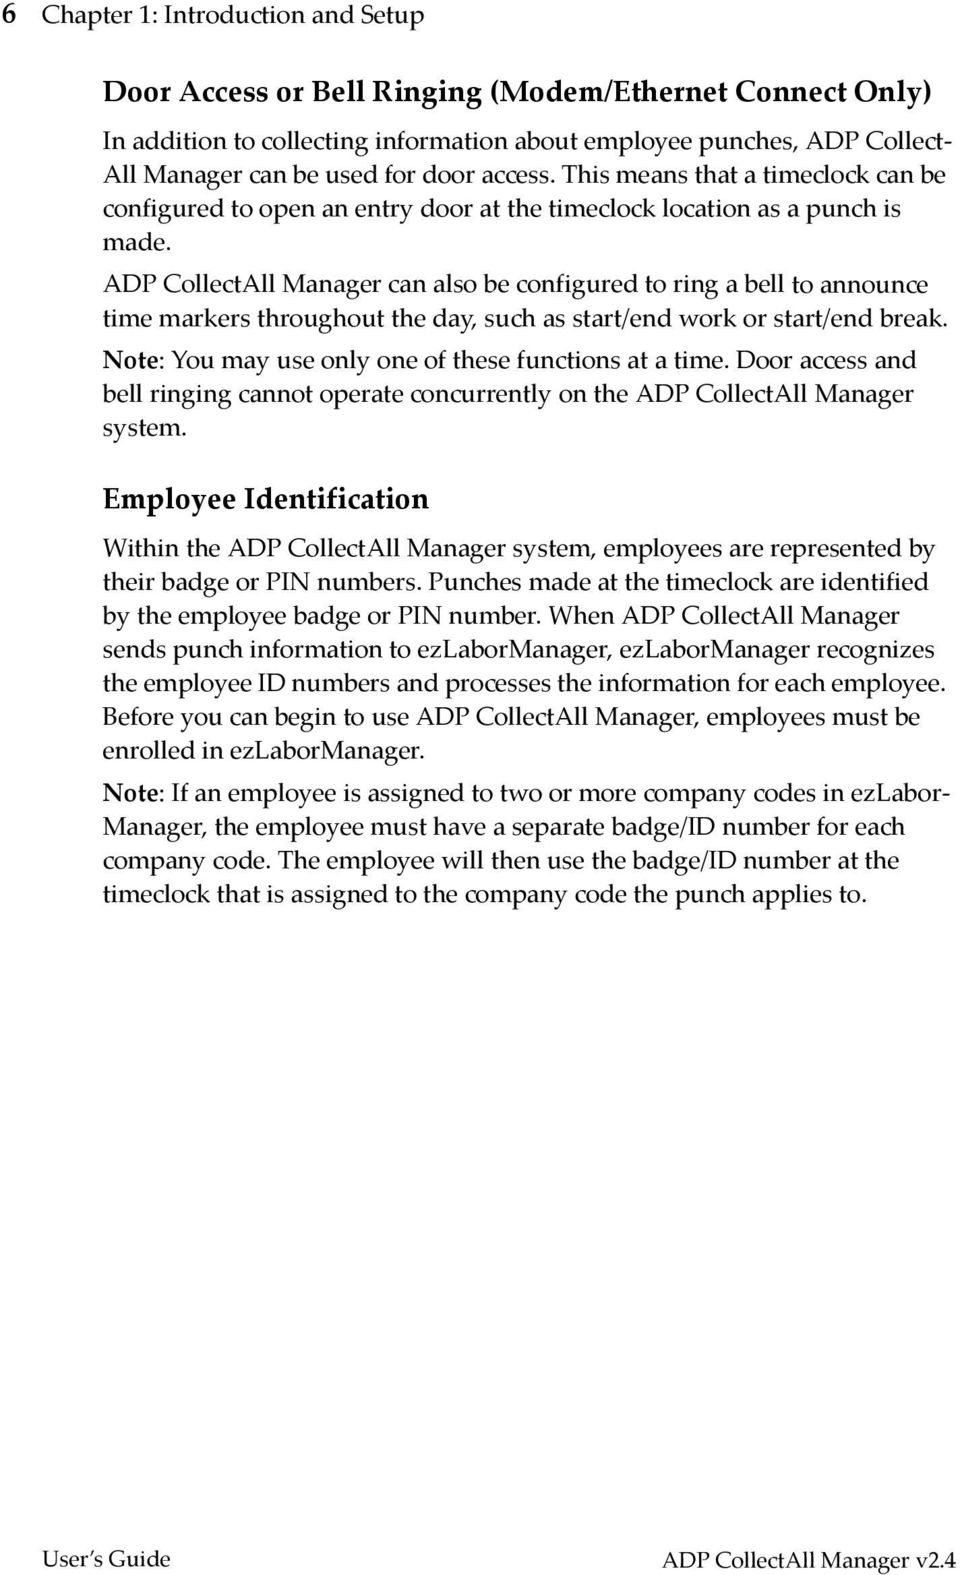 ADP CollectAll Manager can also be configured to ring a bell to announce time markers throughout the day, such as start/end work or start/end break.